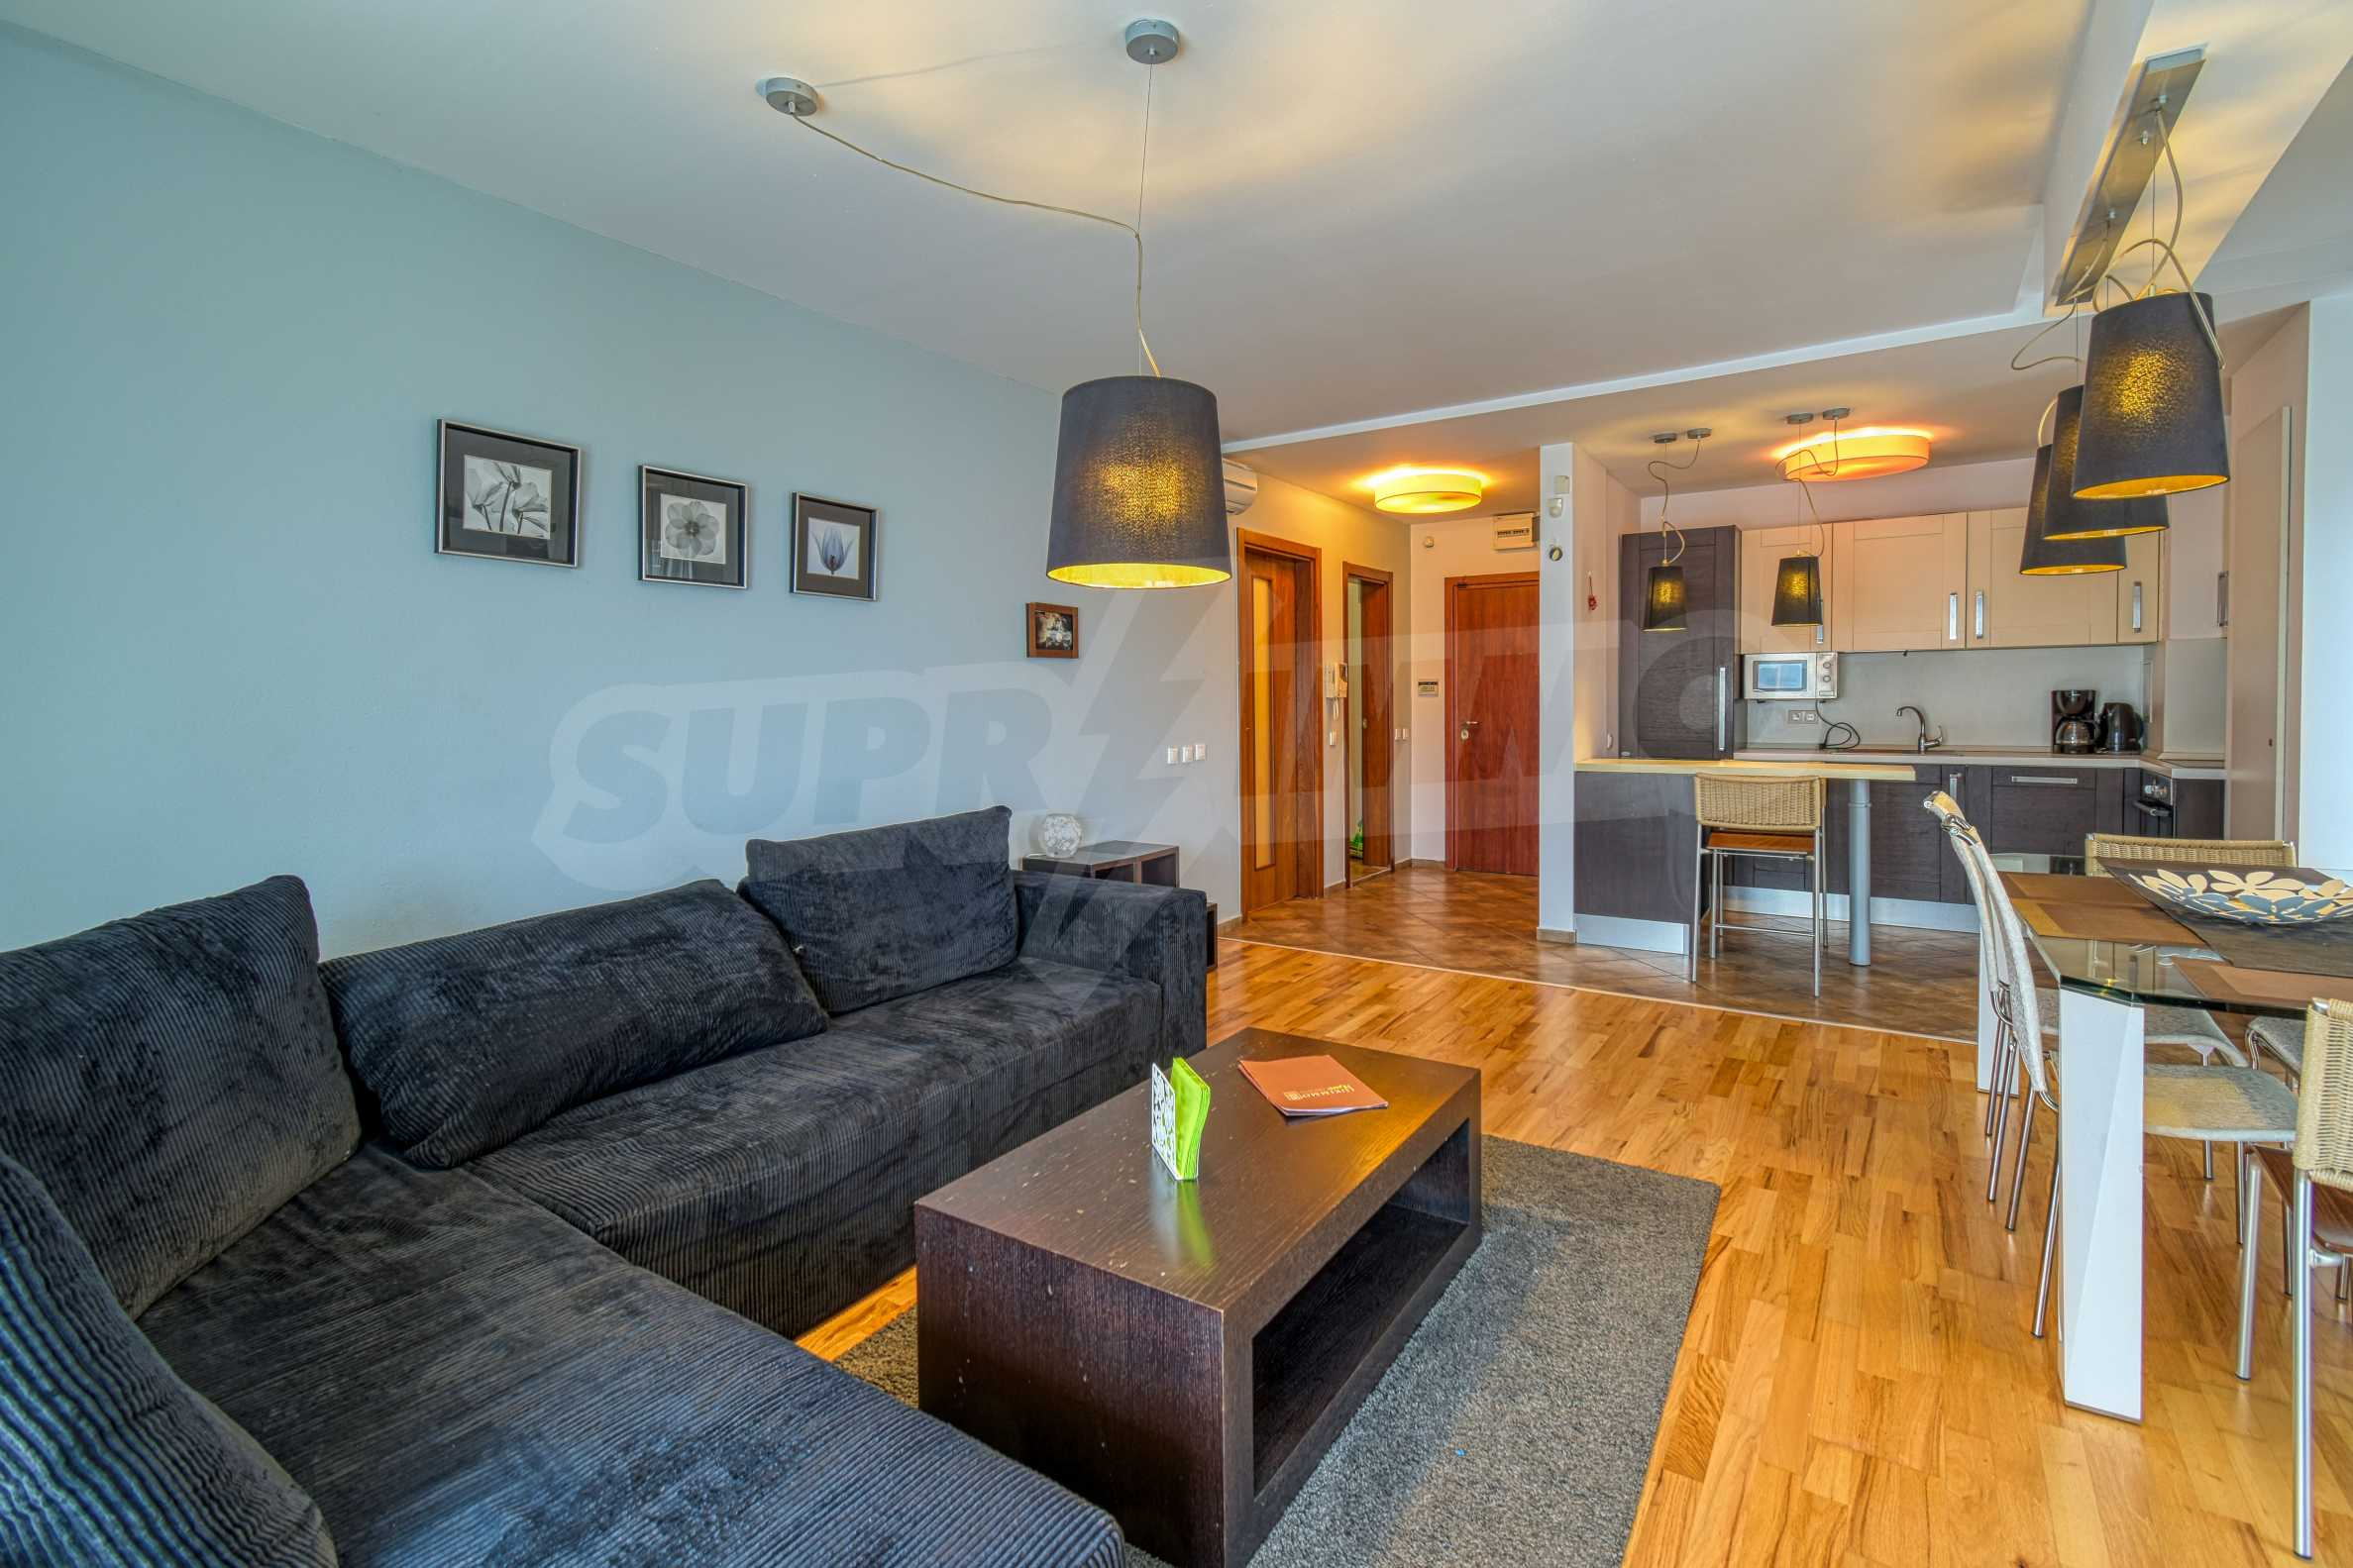 Luxurious and fully furnished two-bedroom apartment in a gated complex at the foot of Vitosha Mountain 5